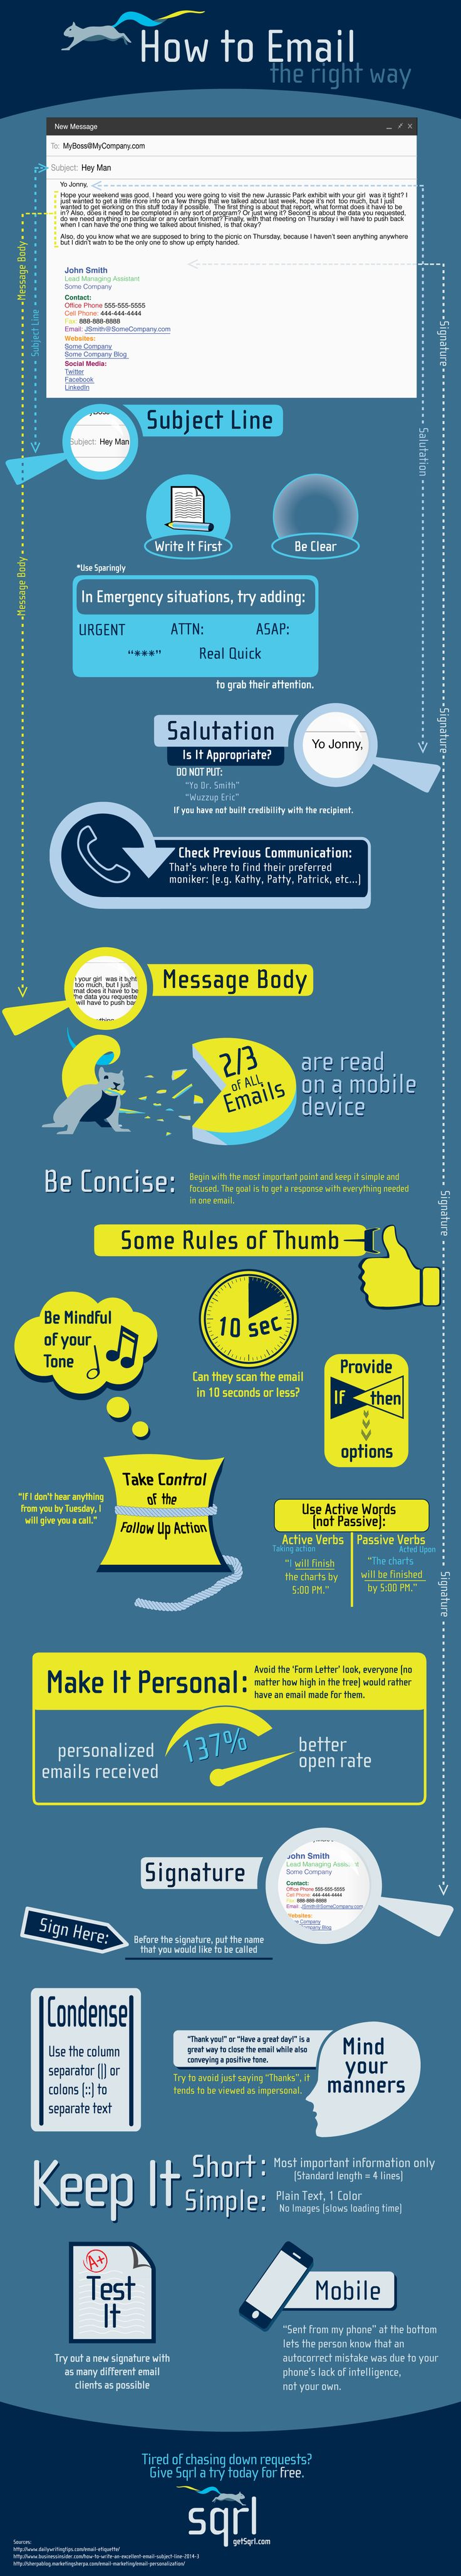 How to Email the Right Way #infographic #Email #Marketing